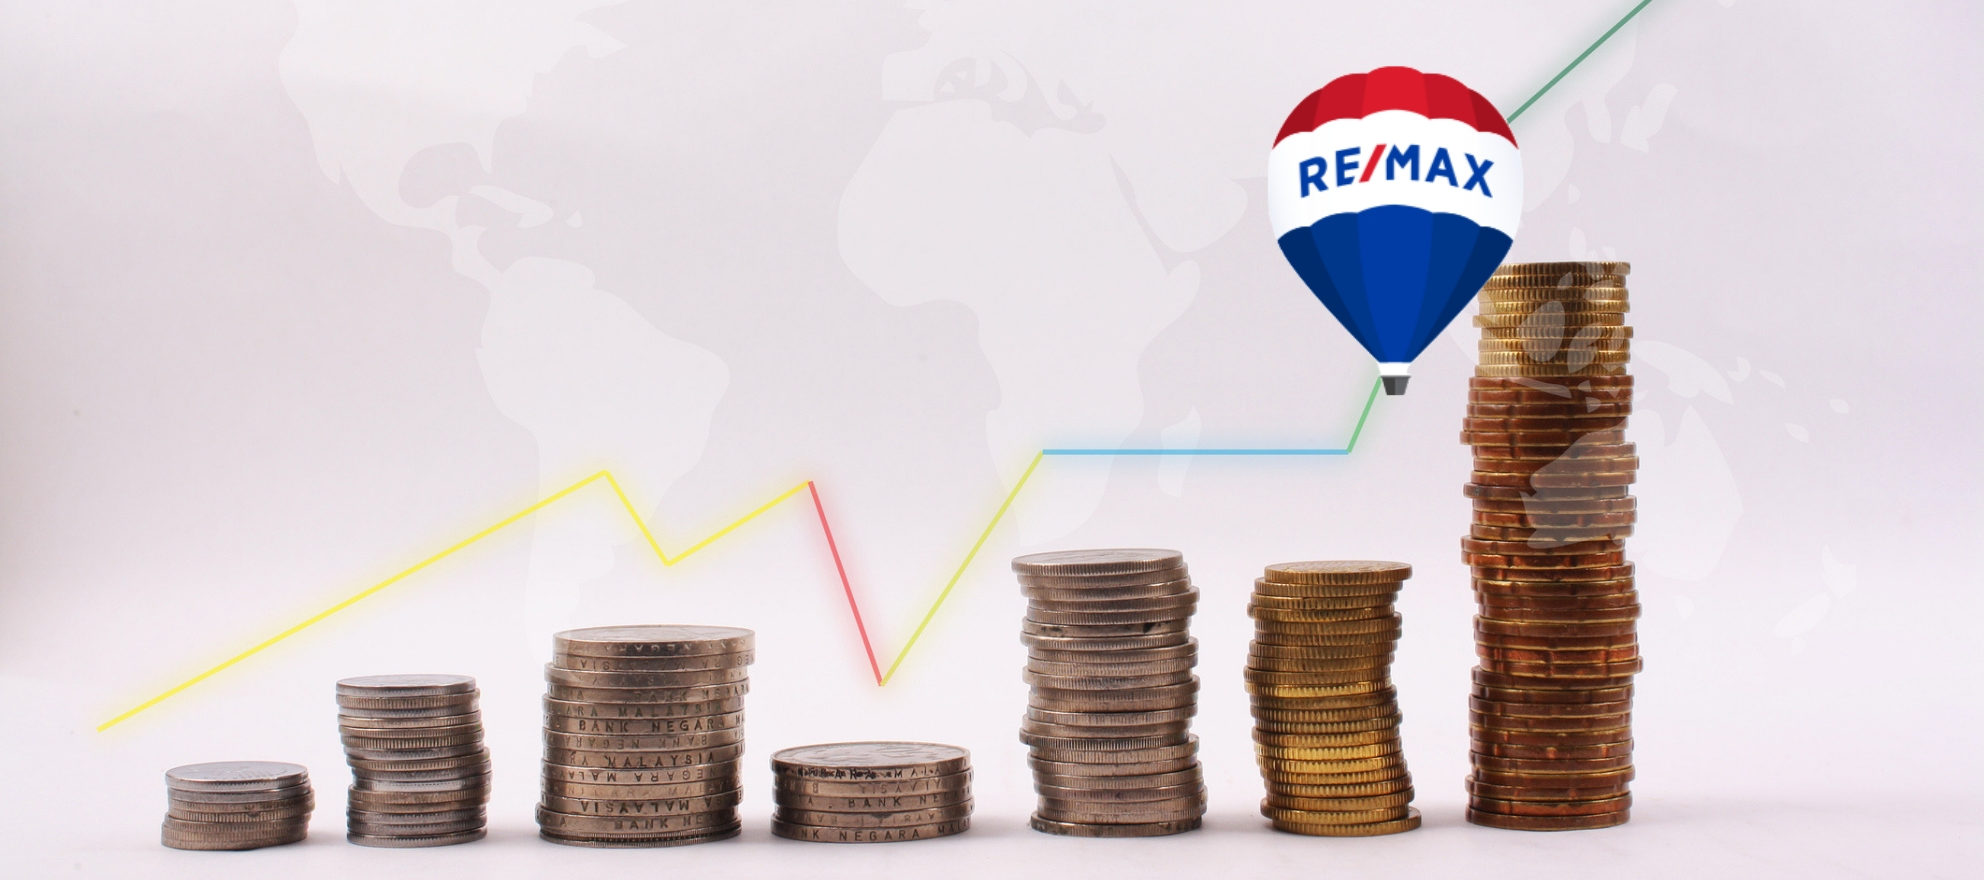 RE/MAX reports $50.8M in revenue for 4th quarter, beating estimates